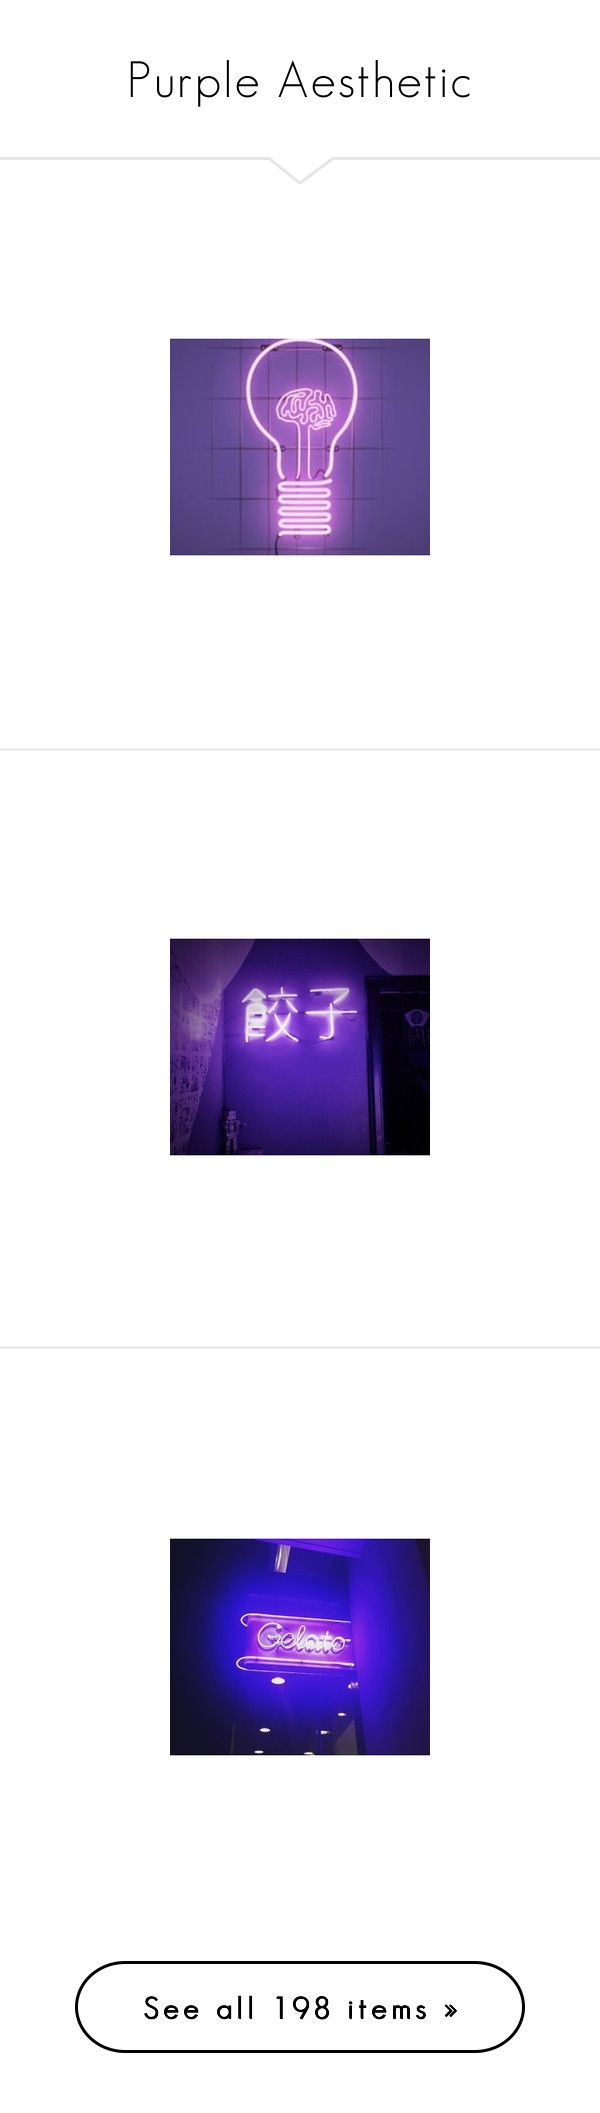 """""""Purple Aesthetic"""" by i-am-the-random-queen ❤ liked on Polyvore featuring home, home decor, office accessories, heart sign, neon signs, handmade signs, pictures, backgrounds, photos and quotes"""